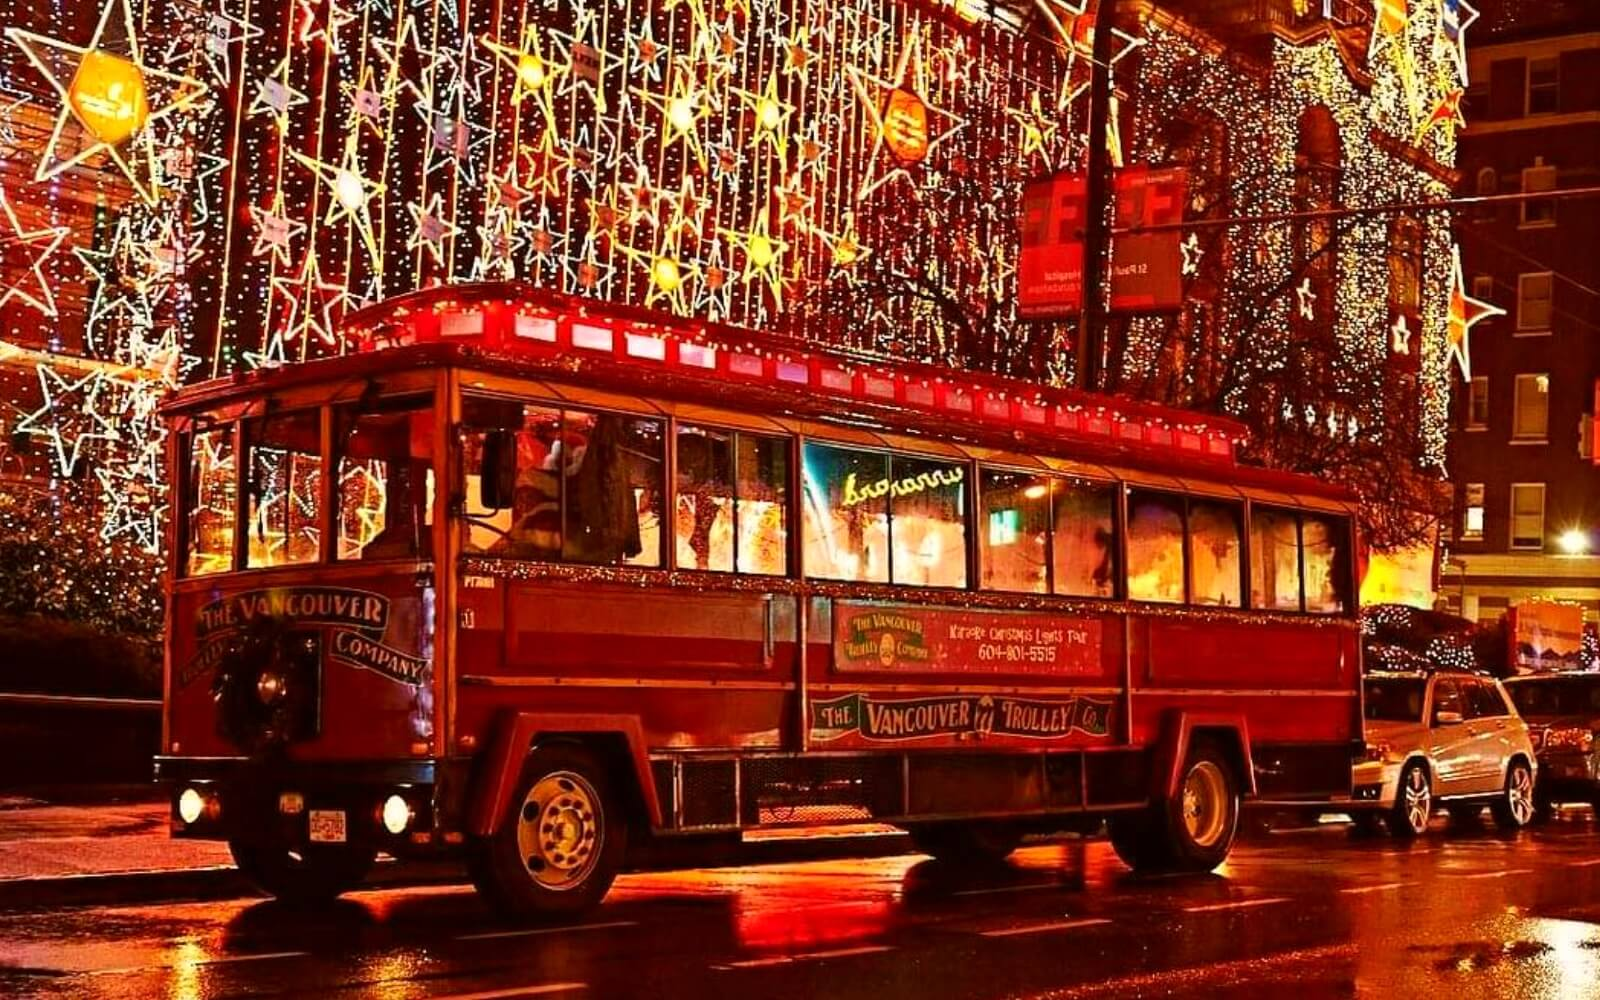 A Westcoast Sightseeing bus passes in front of Christmas lights